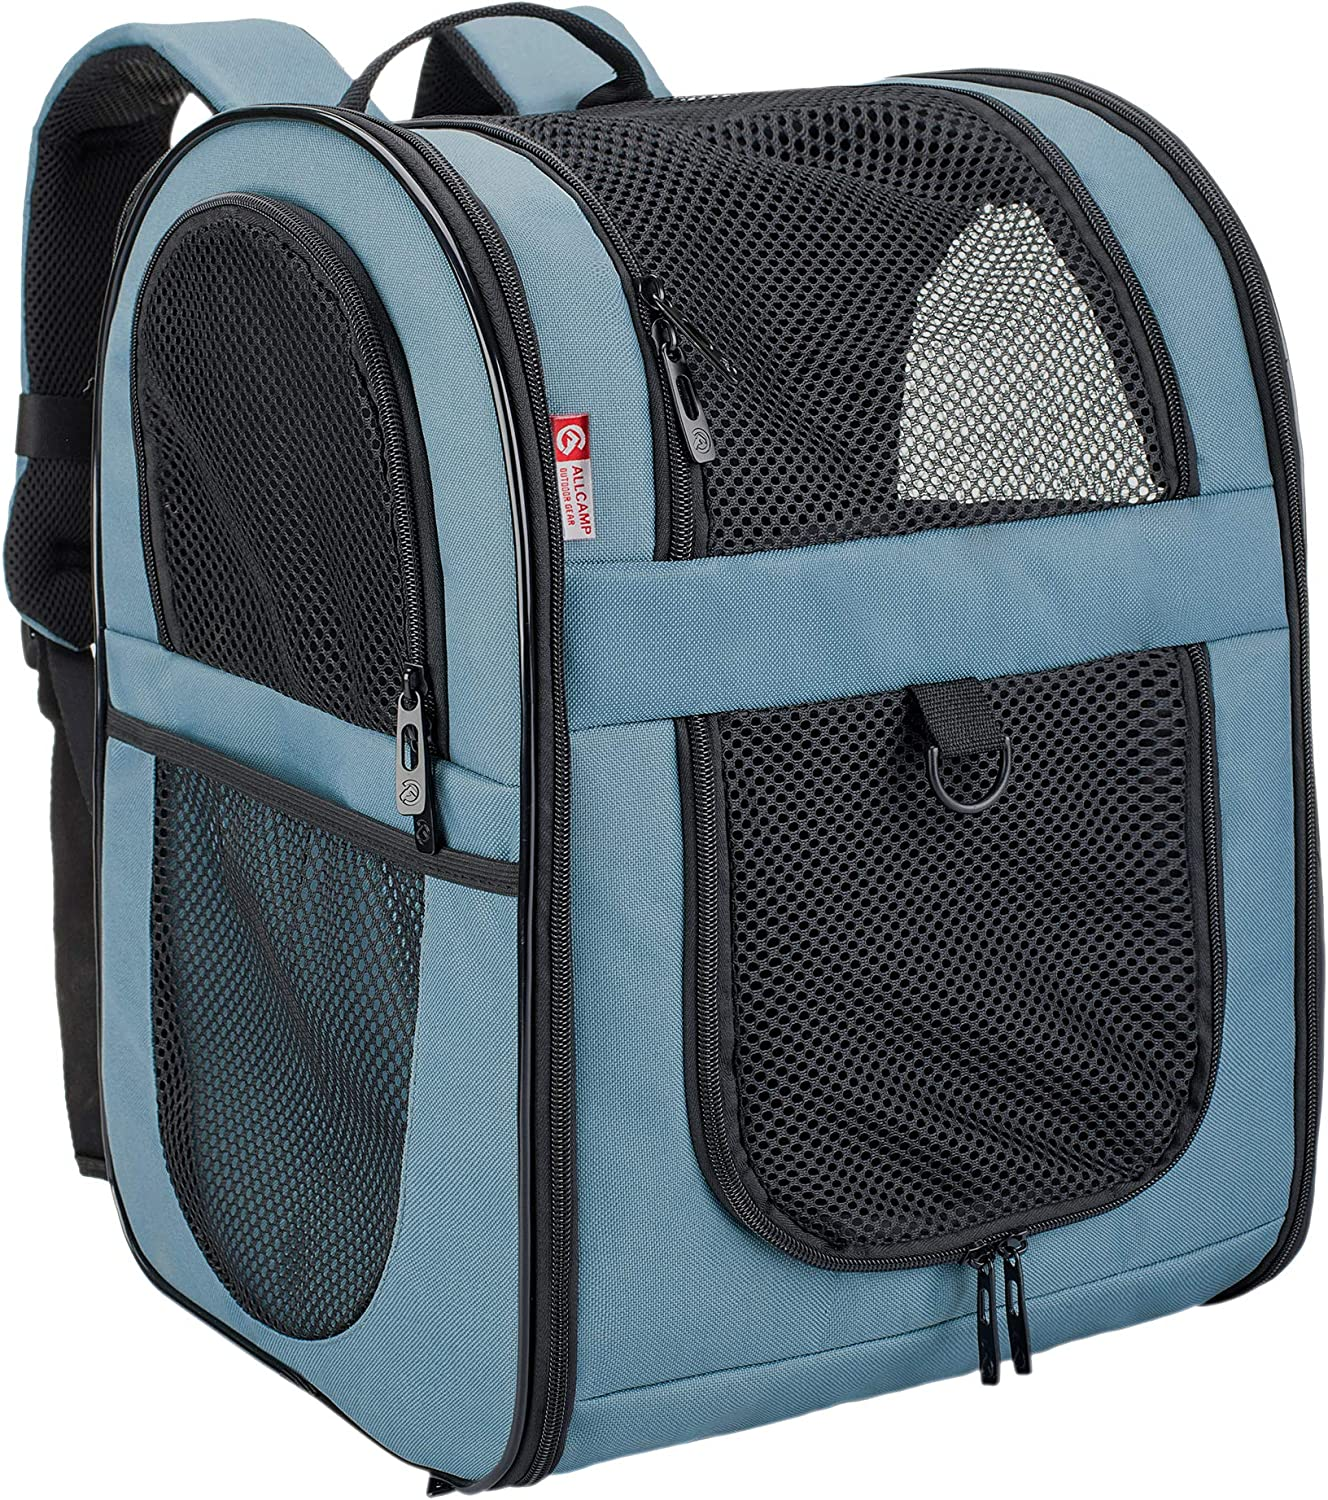 Apollo walker Pet Carrier Backpack for Small Cats and Dogs, Puppies, TwoSided Entry, Safety Features and Cushion Back Support   for Travel, Hiking, Outdoor Use (bluee)